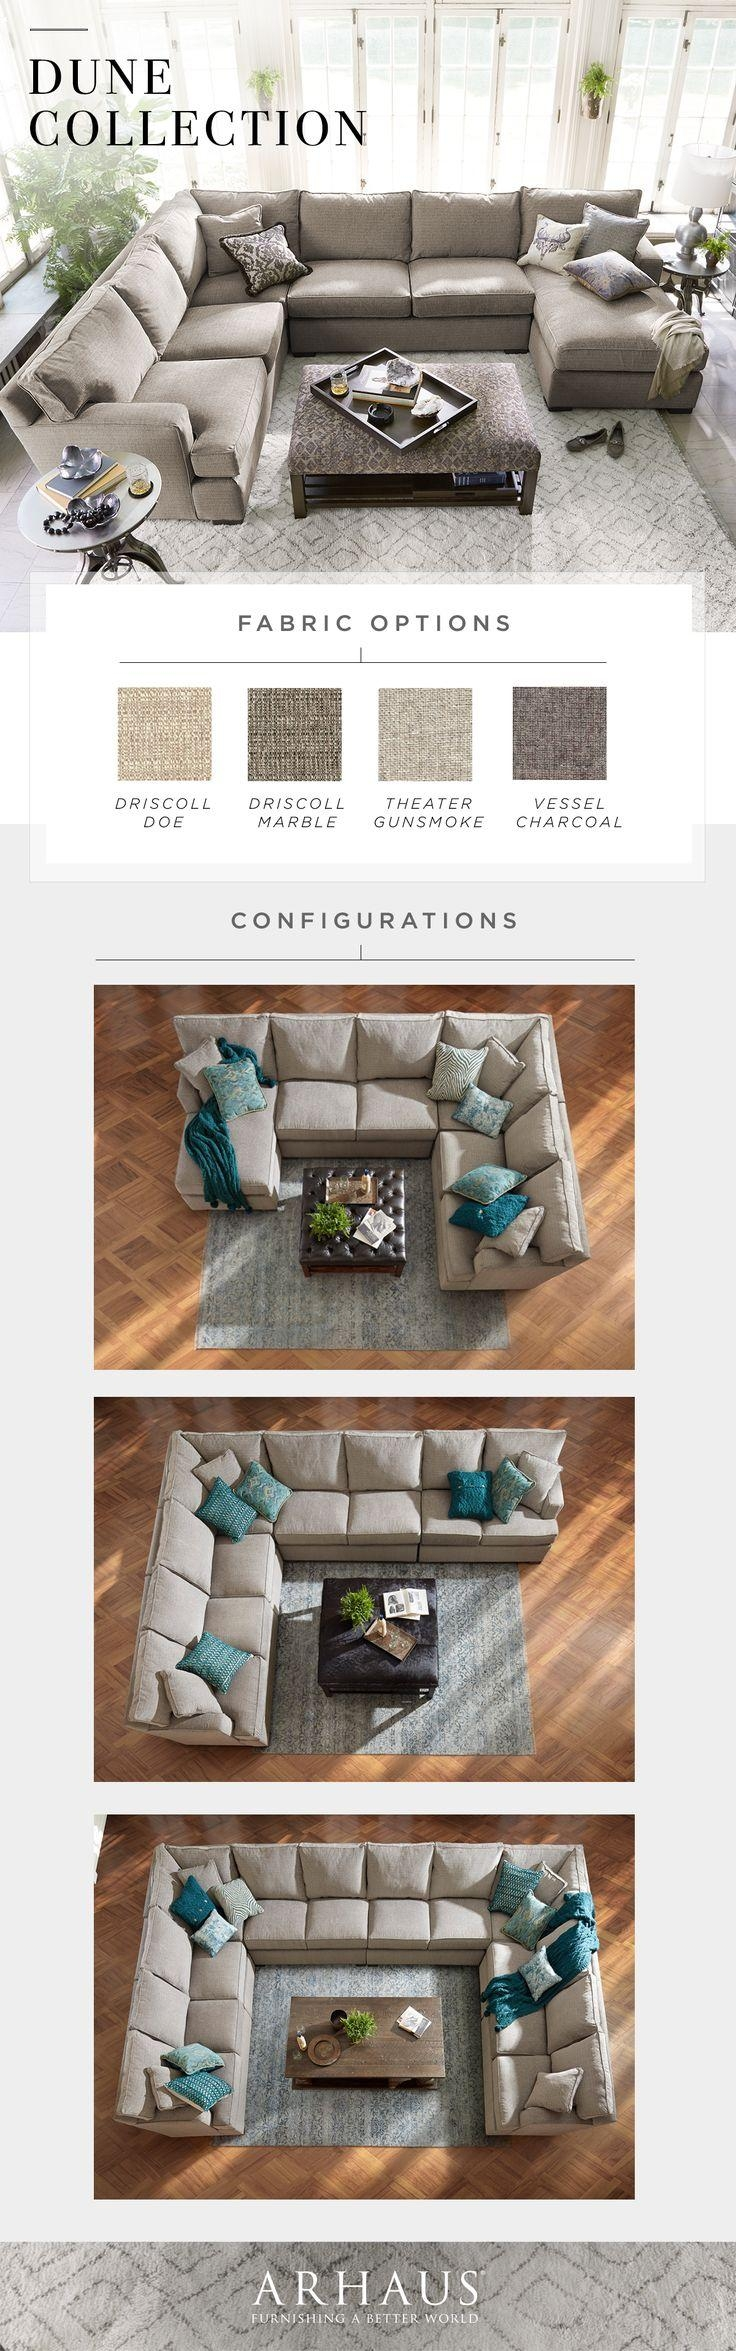 14 Best Sectional Sofas Images On Pinterest | Living Room for Arhaus Emory Sectional